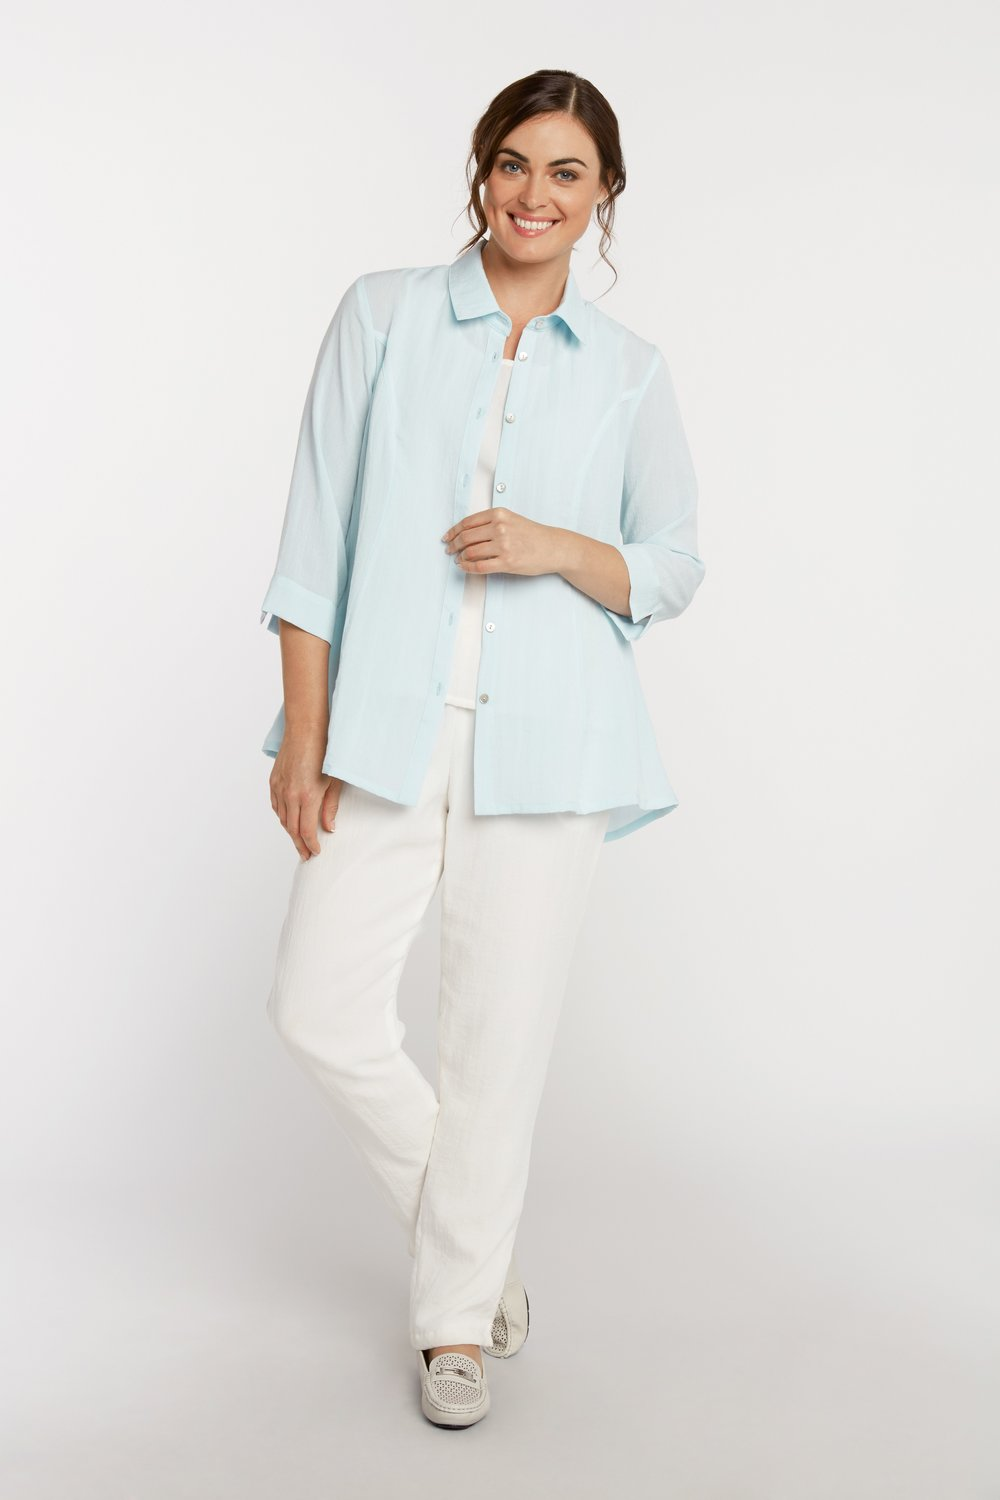 AA224 - Veronica Button-Up Blouse    Seaglass - CL4690